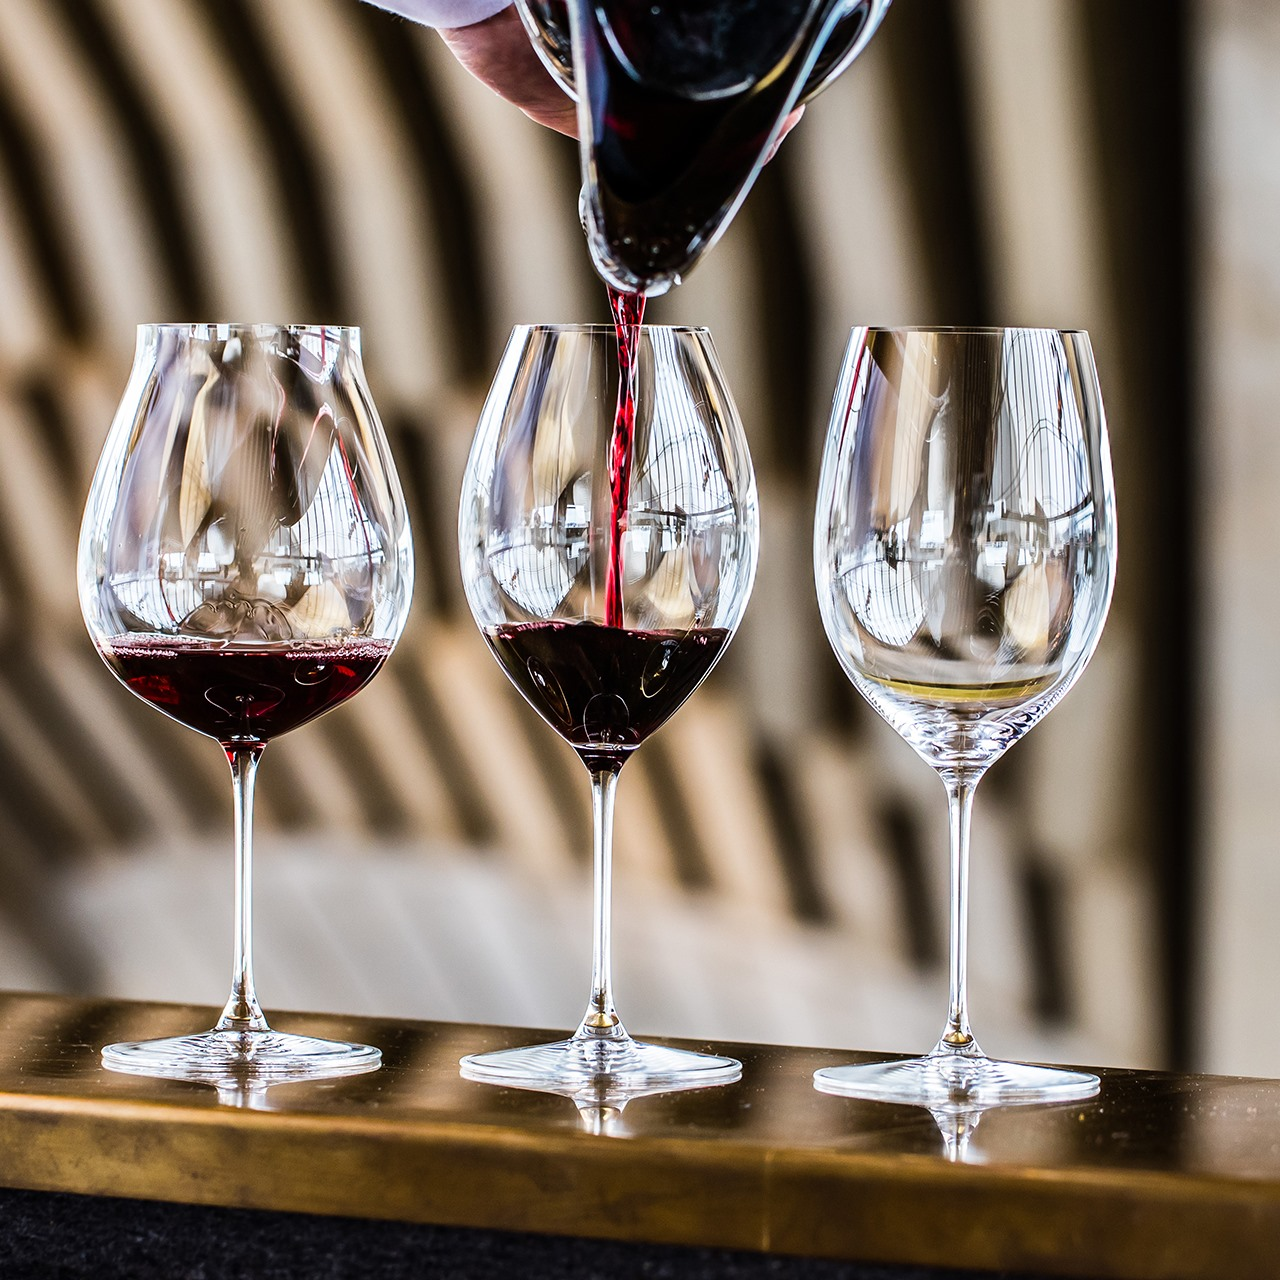 Riedel And Wine Events Scotland Team Up To Show How Glass Shape Affects Taste photo